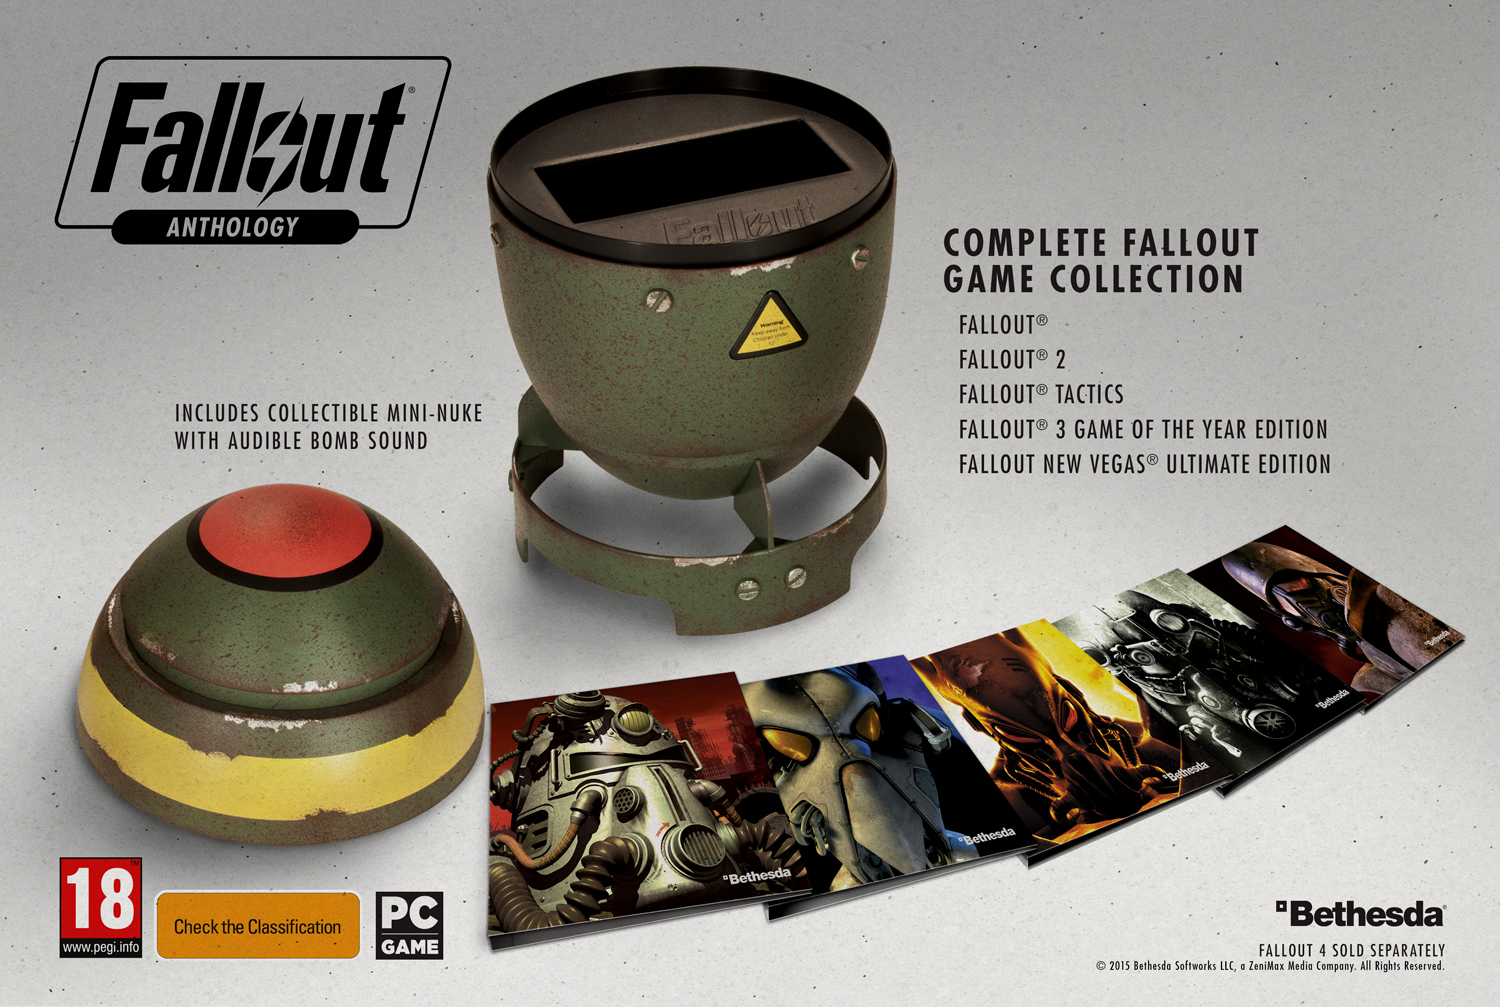 Photo of Fallout Anthology vine intr-o mini bomba nucleara